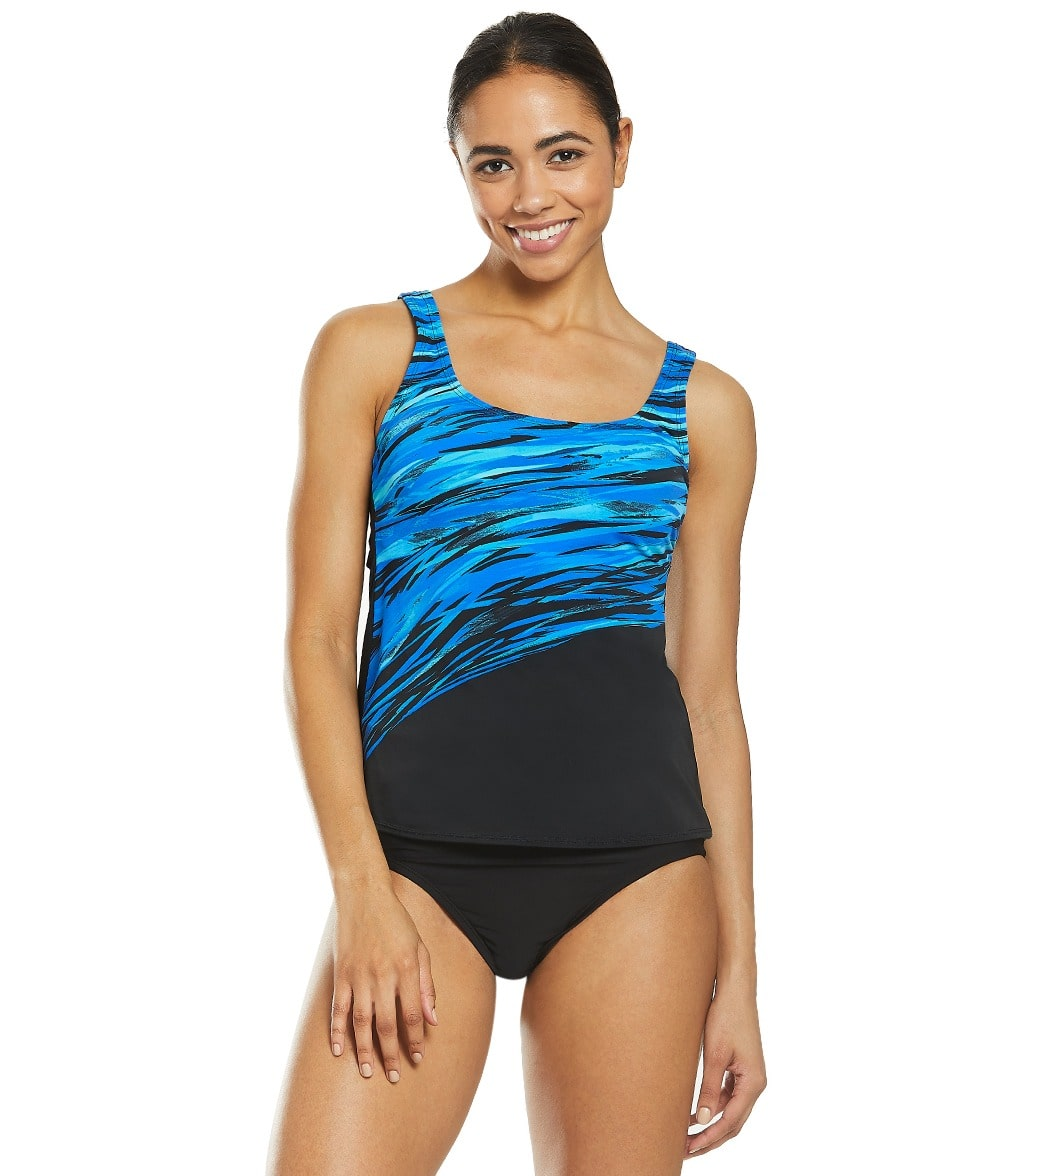 957a52d1bab6e Reebok Women's Northern Light Show Chlorine Resistant Tankini Top at  SwimOutlet.com - Free Shipping